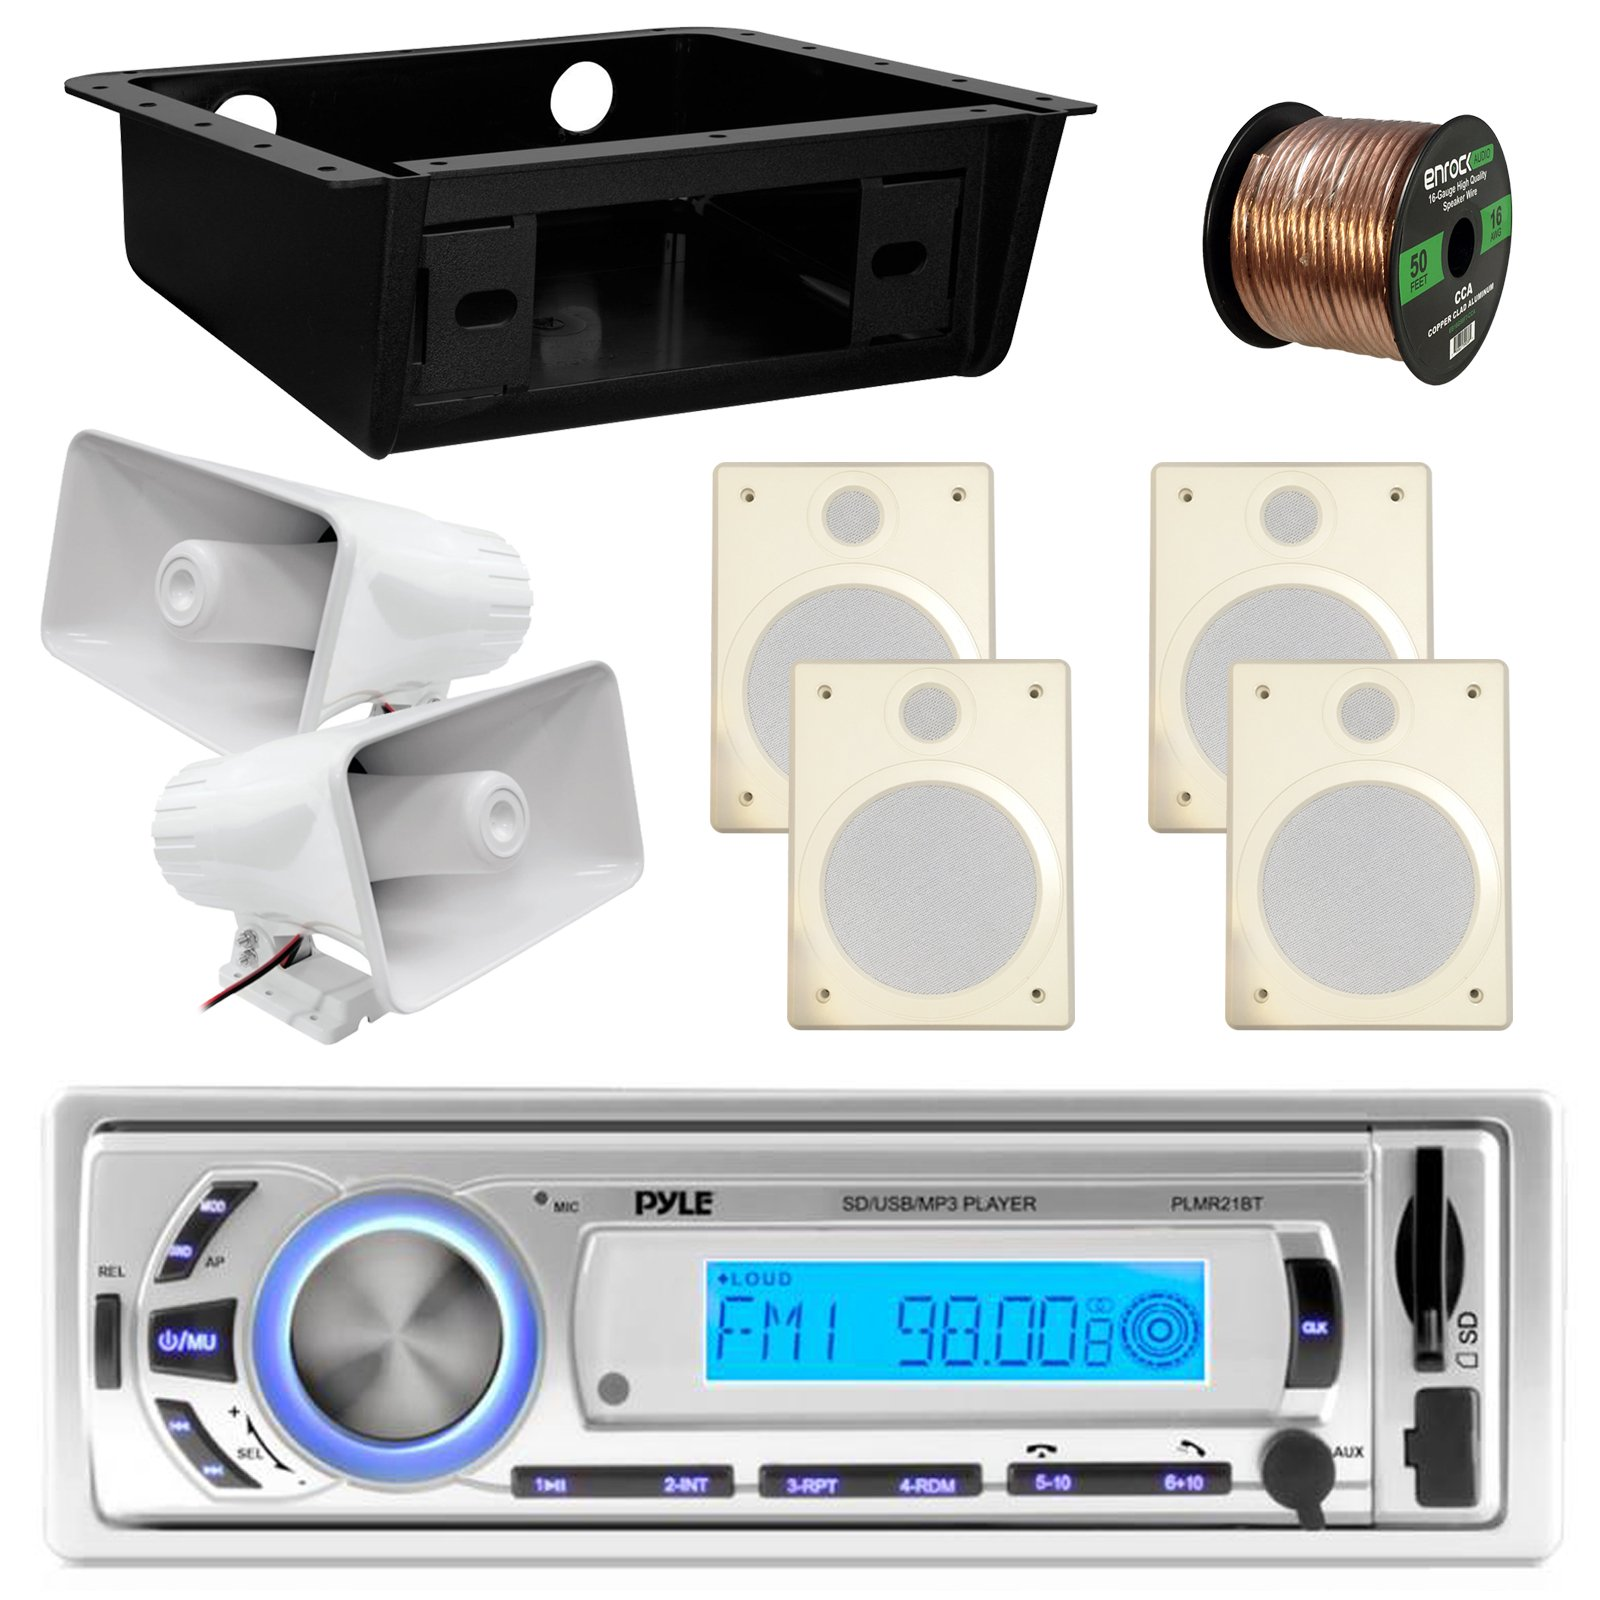 Pyle PLMR21BT USB/SD/MP3 Bluetooth Stereo Receiver Bundle Combo With 4x Magnadyne Ceiling/Wall Mount RV Satellite Box Speaker + 2x 6'' PA Horn Speaker + Metra DIN Kit + Enrock 50 Foot Speaker Wire